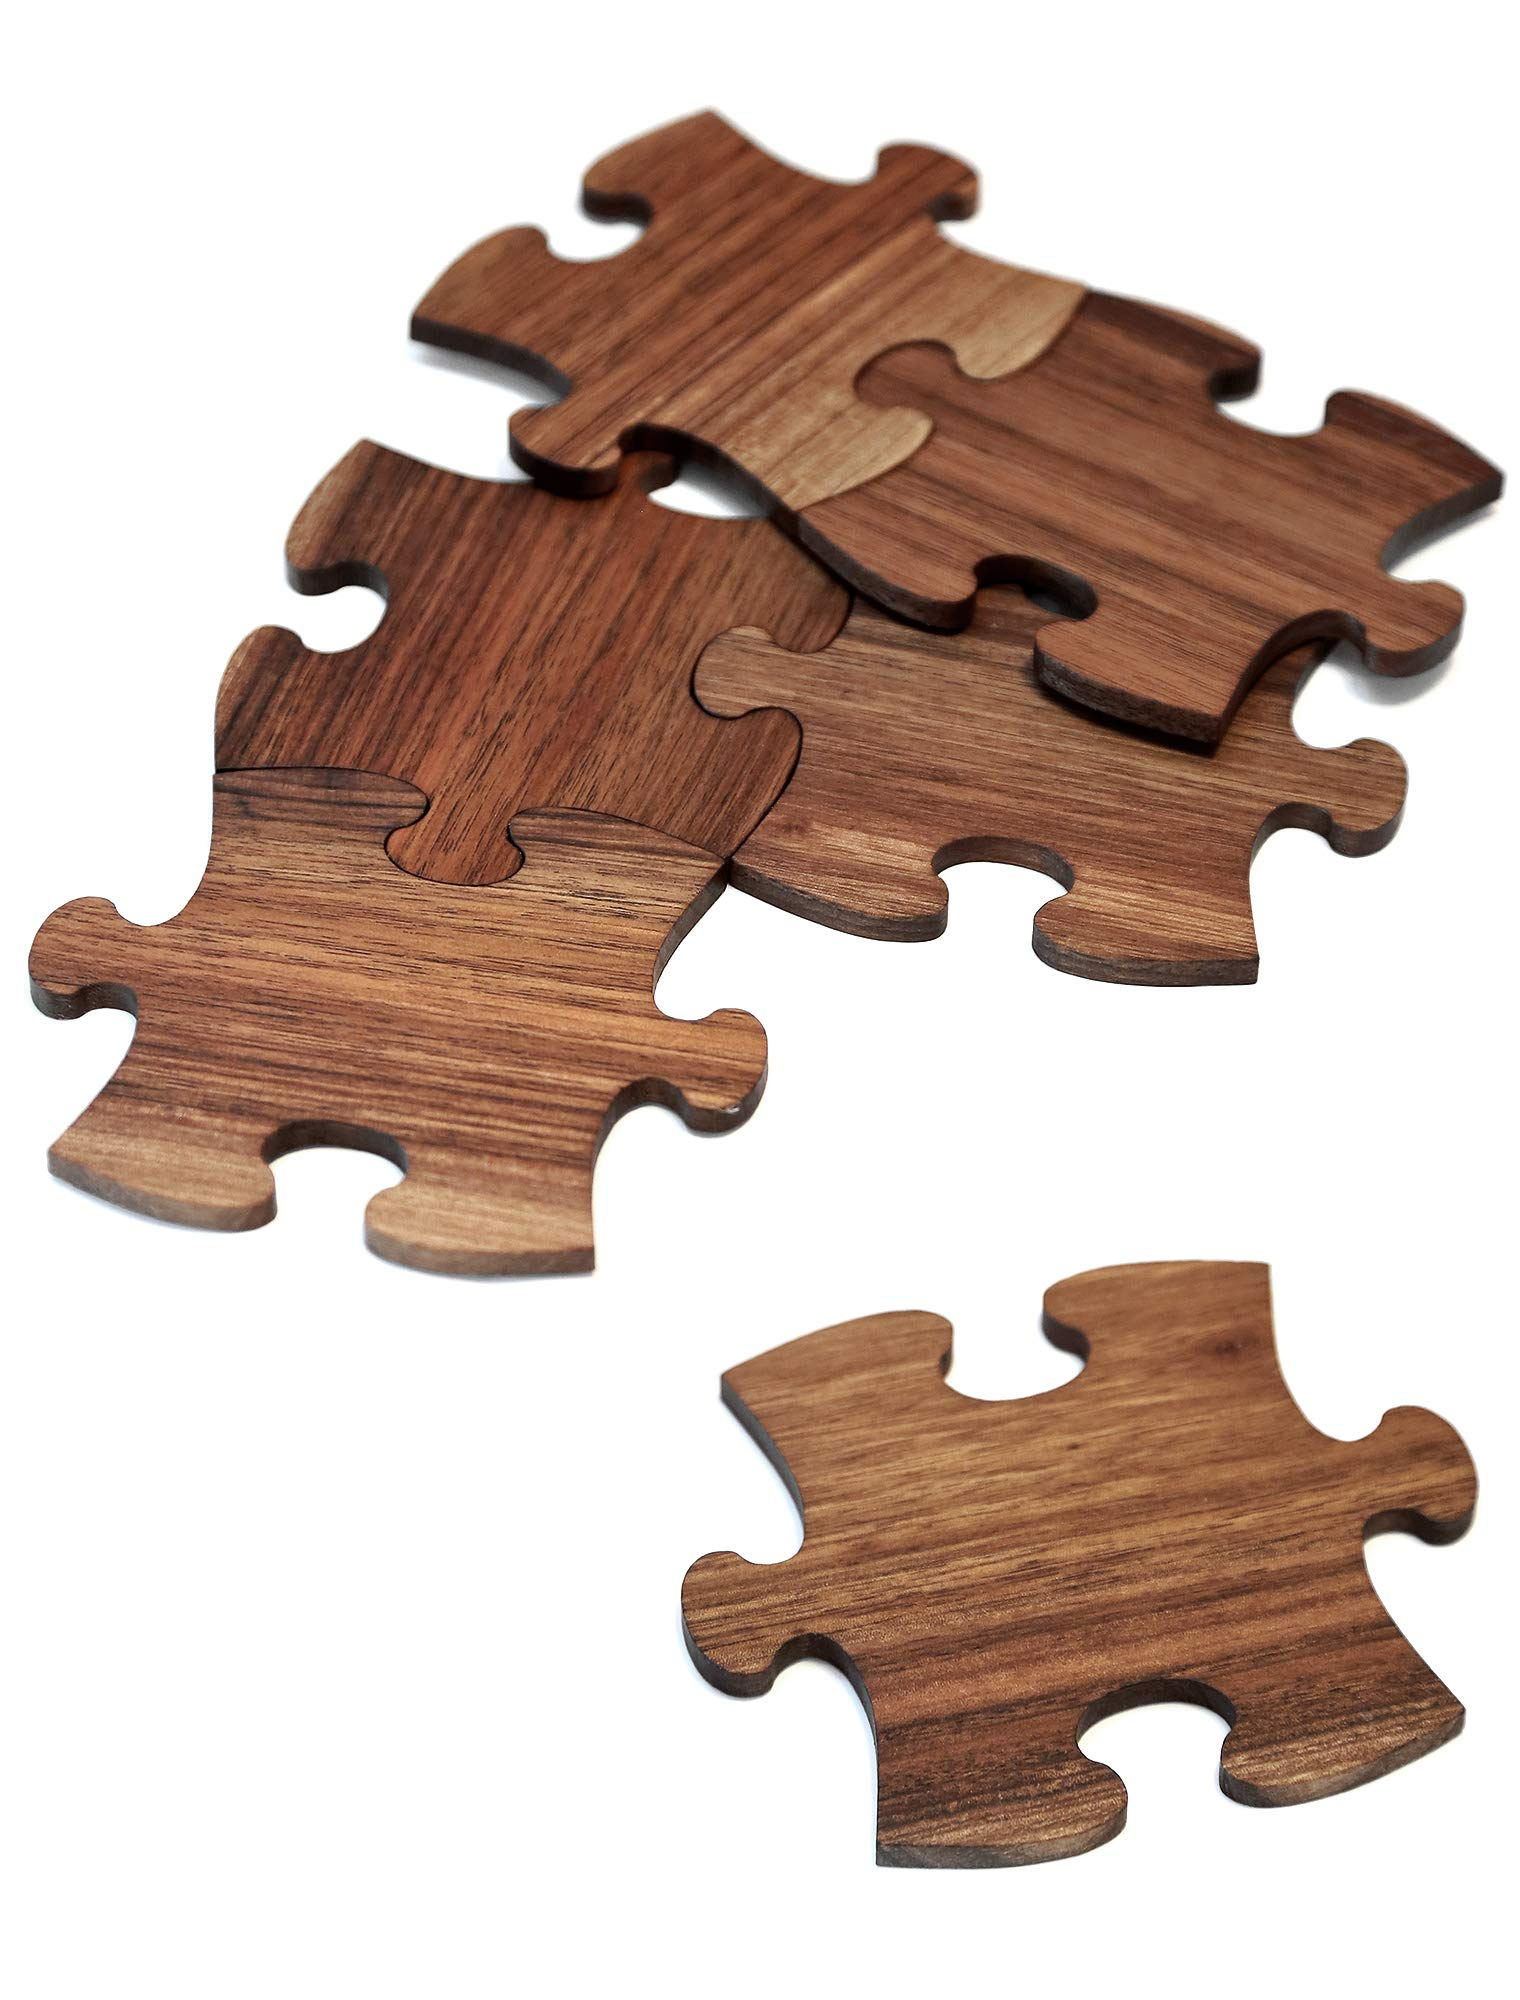 Mr.Art Wood Wooden Puzzle Drink Coasters (Set of 6), 100% Natural One-Piece Walnut Wood, Ultimate Protection for Furniture - Easy Assembly into One Big Coaster For Large Items